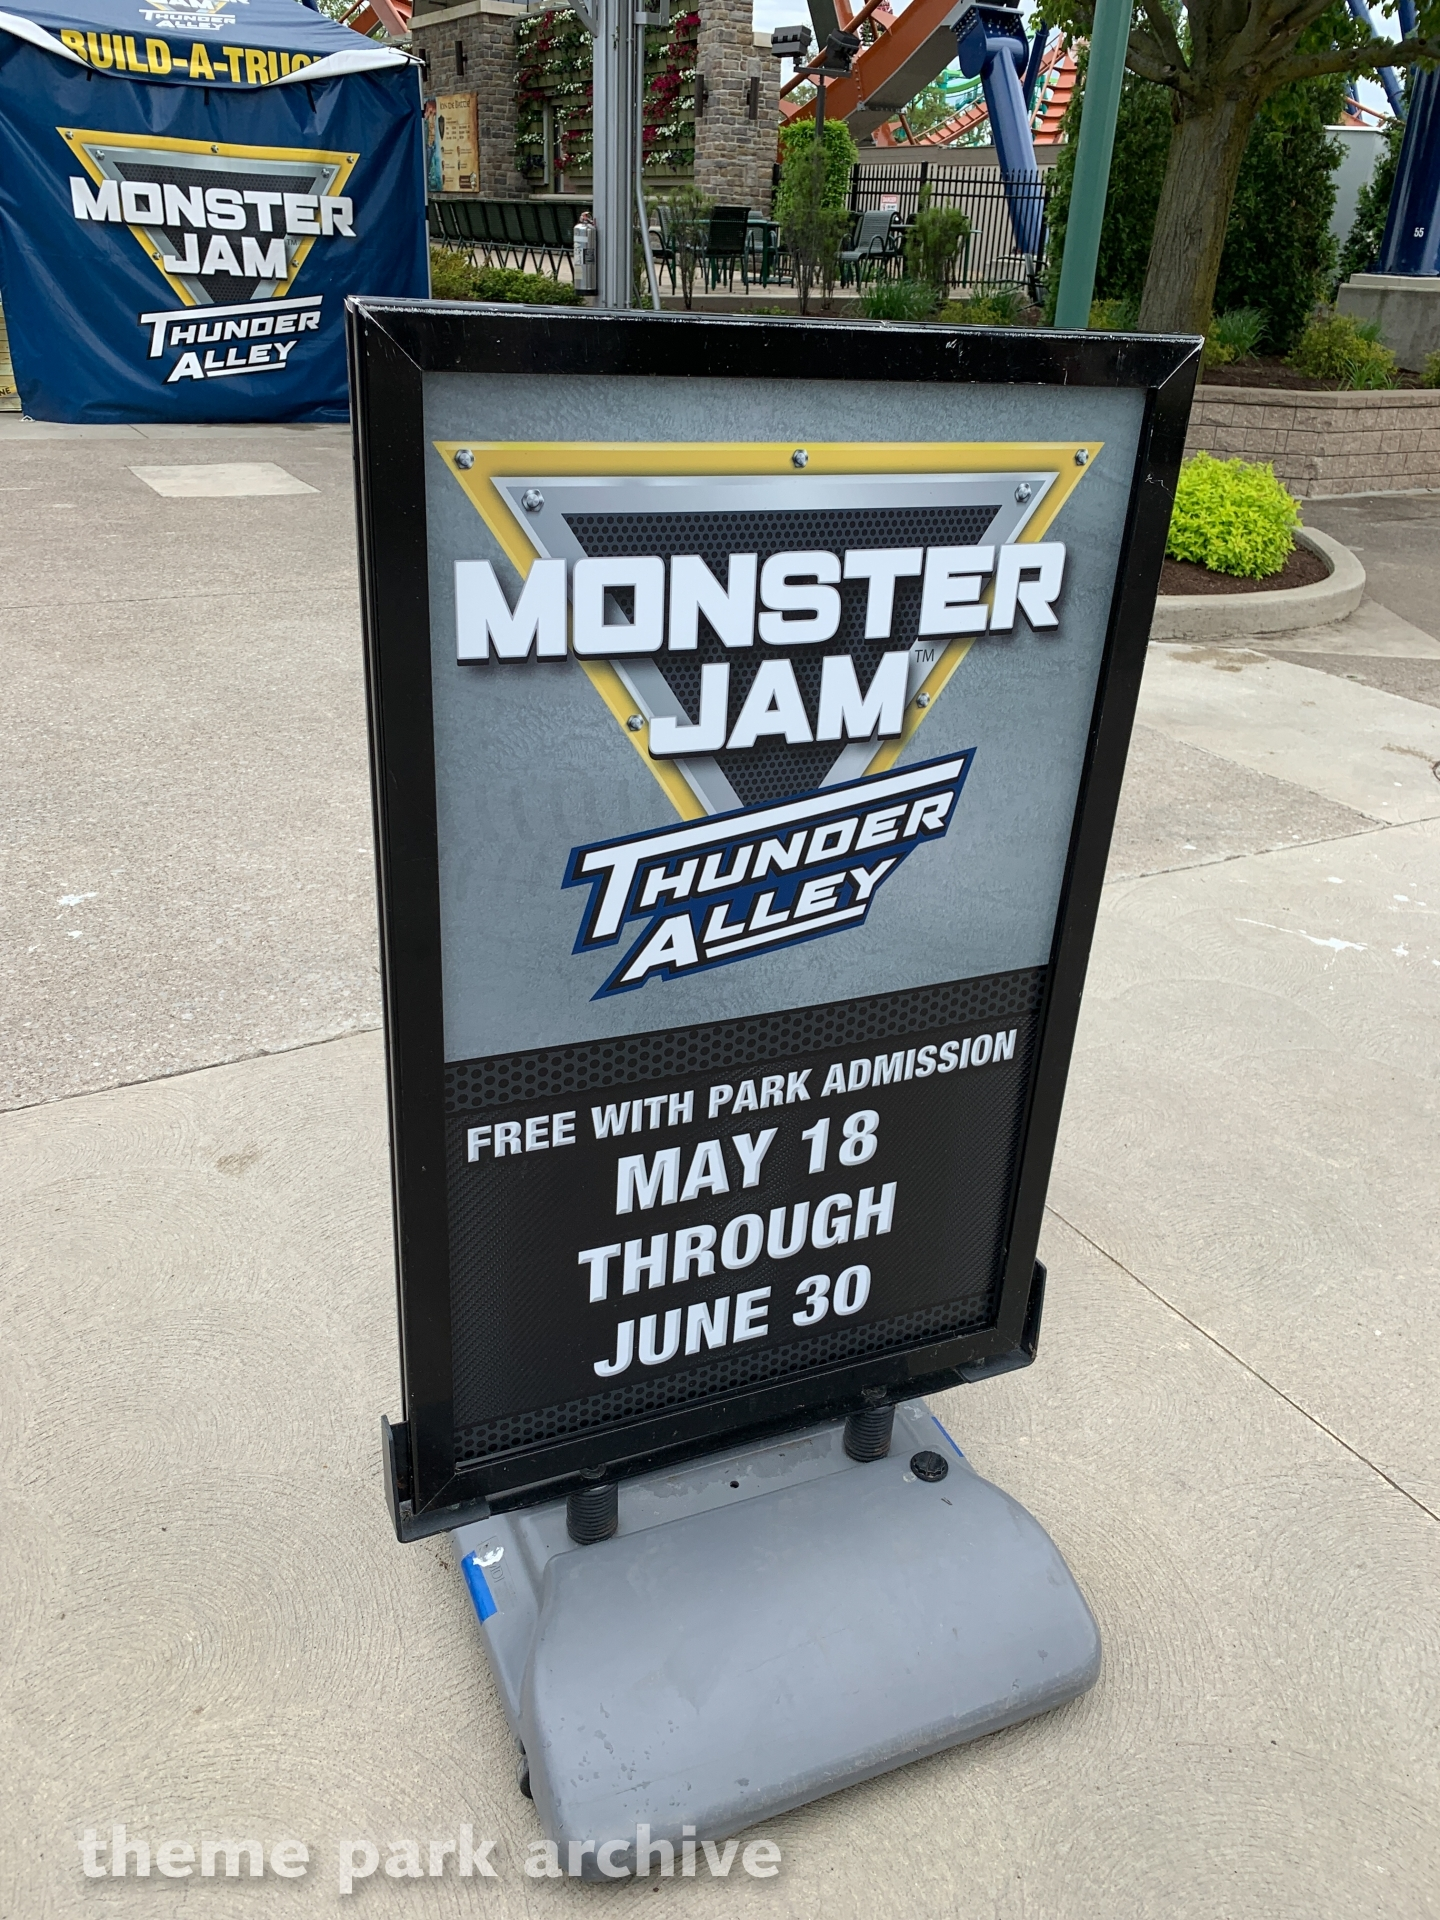 Monster Jam Thunder Alley at Cedar Point